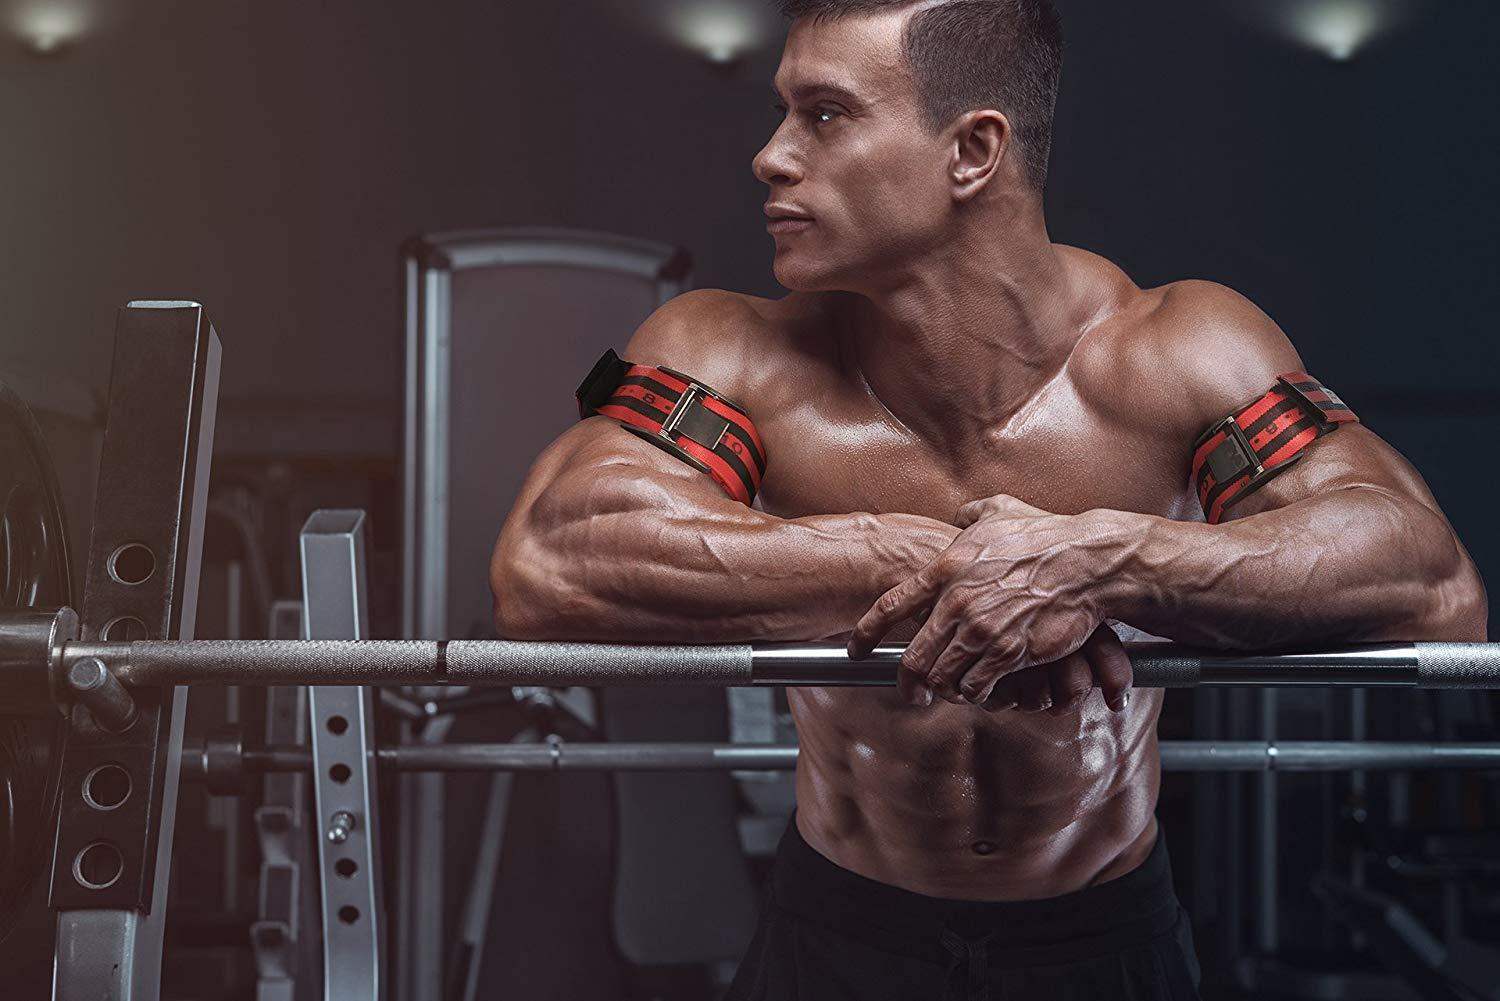 Training Bands PRO X Model Blood Flow Restriction Bands Pull to Tighten